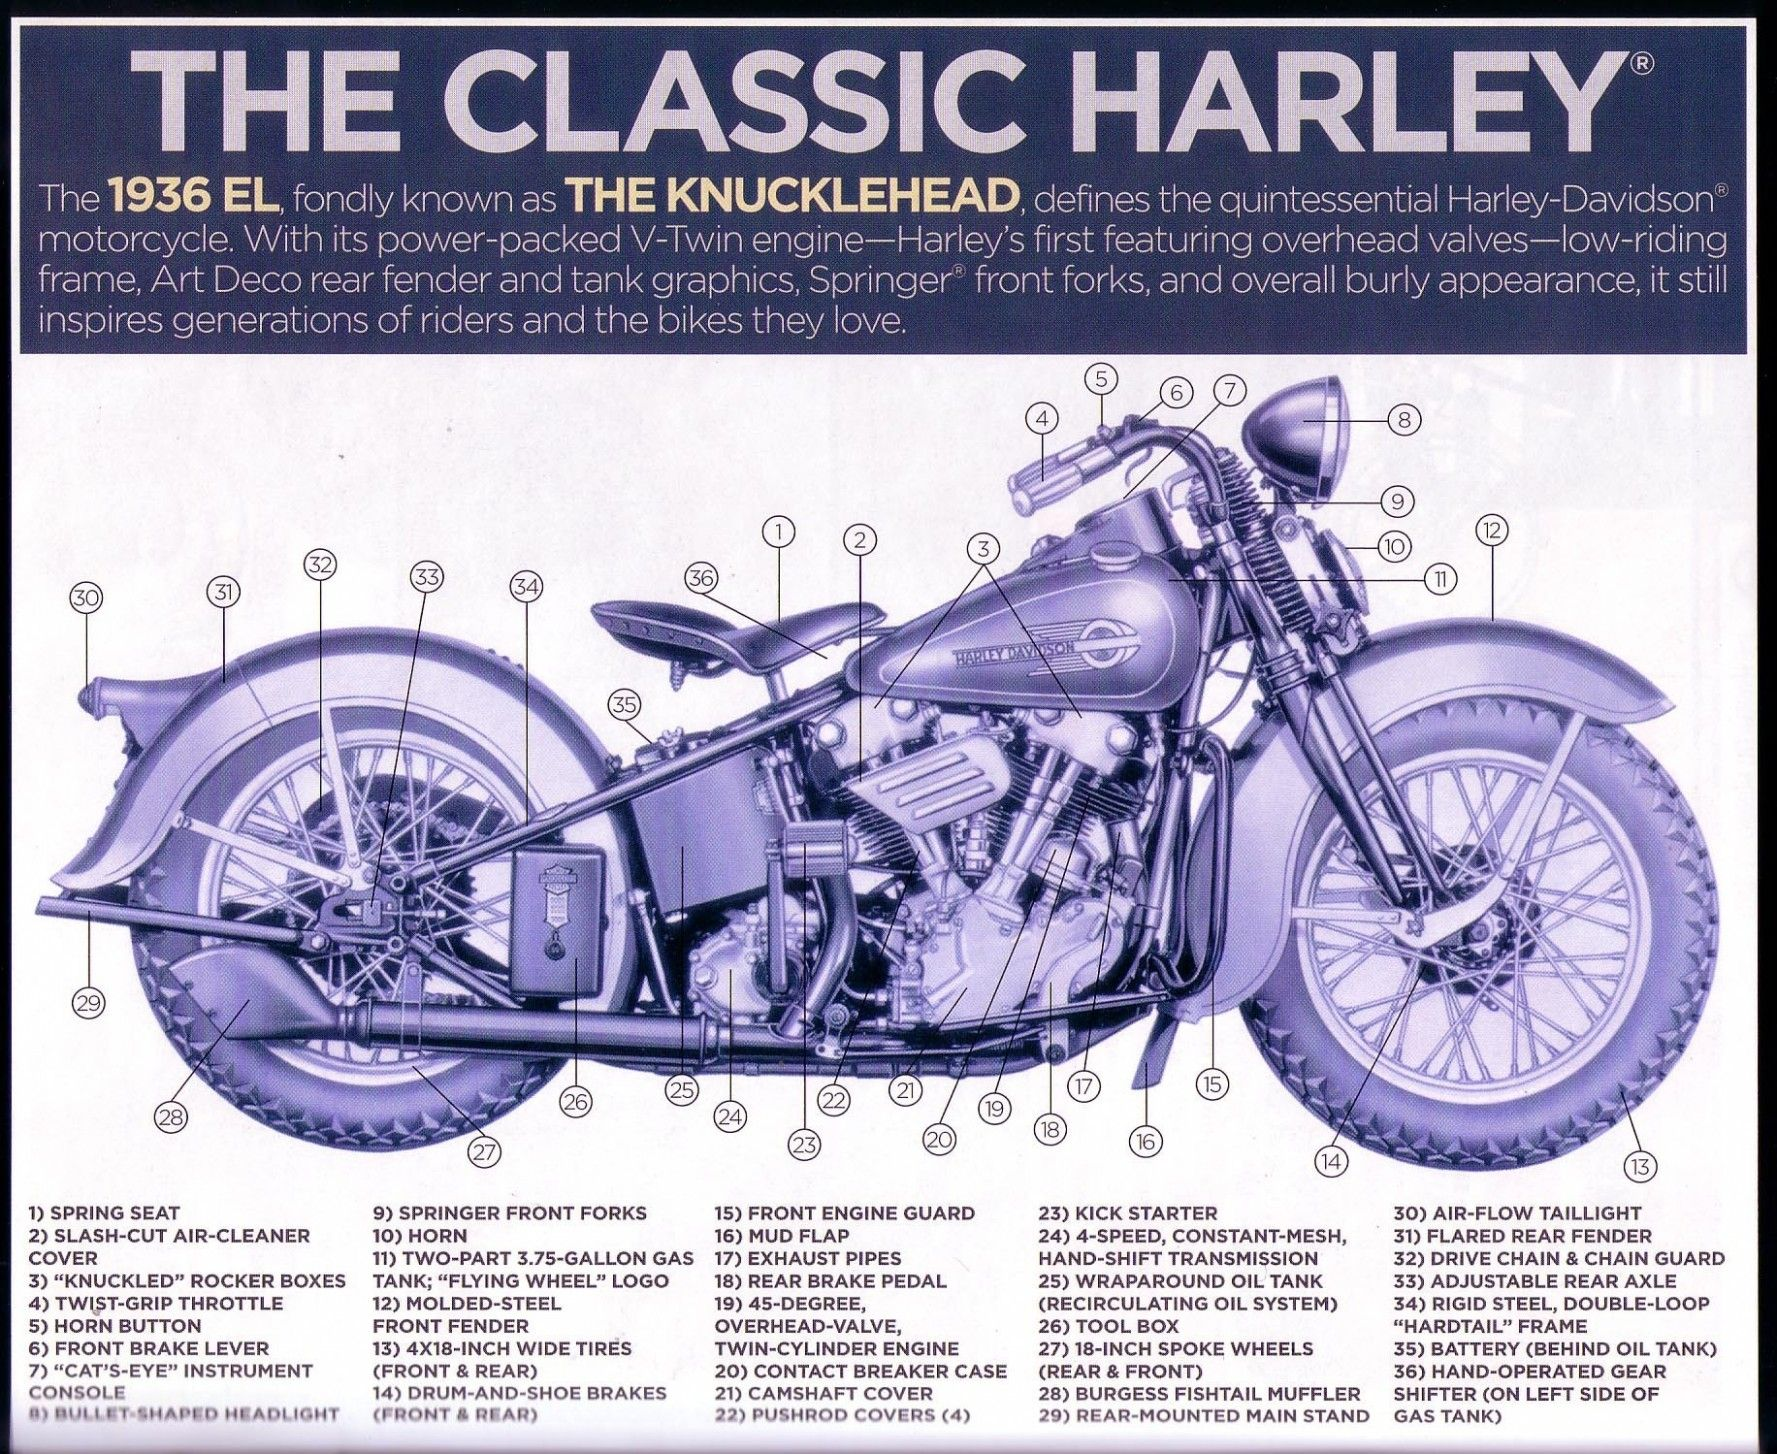 Harley Davidson Twin Cam Engine Diagram Pdf In 2020 Motorcycle Harley Motorcycle Engine Harley Davidson